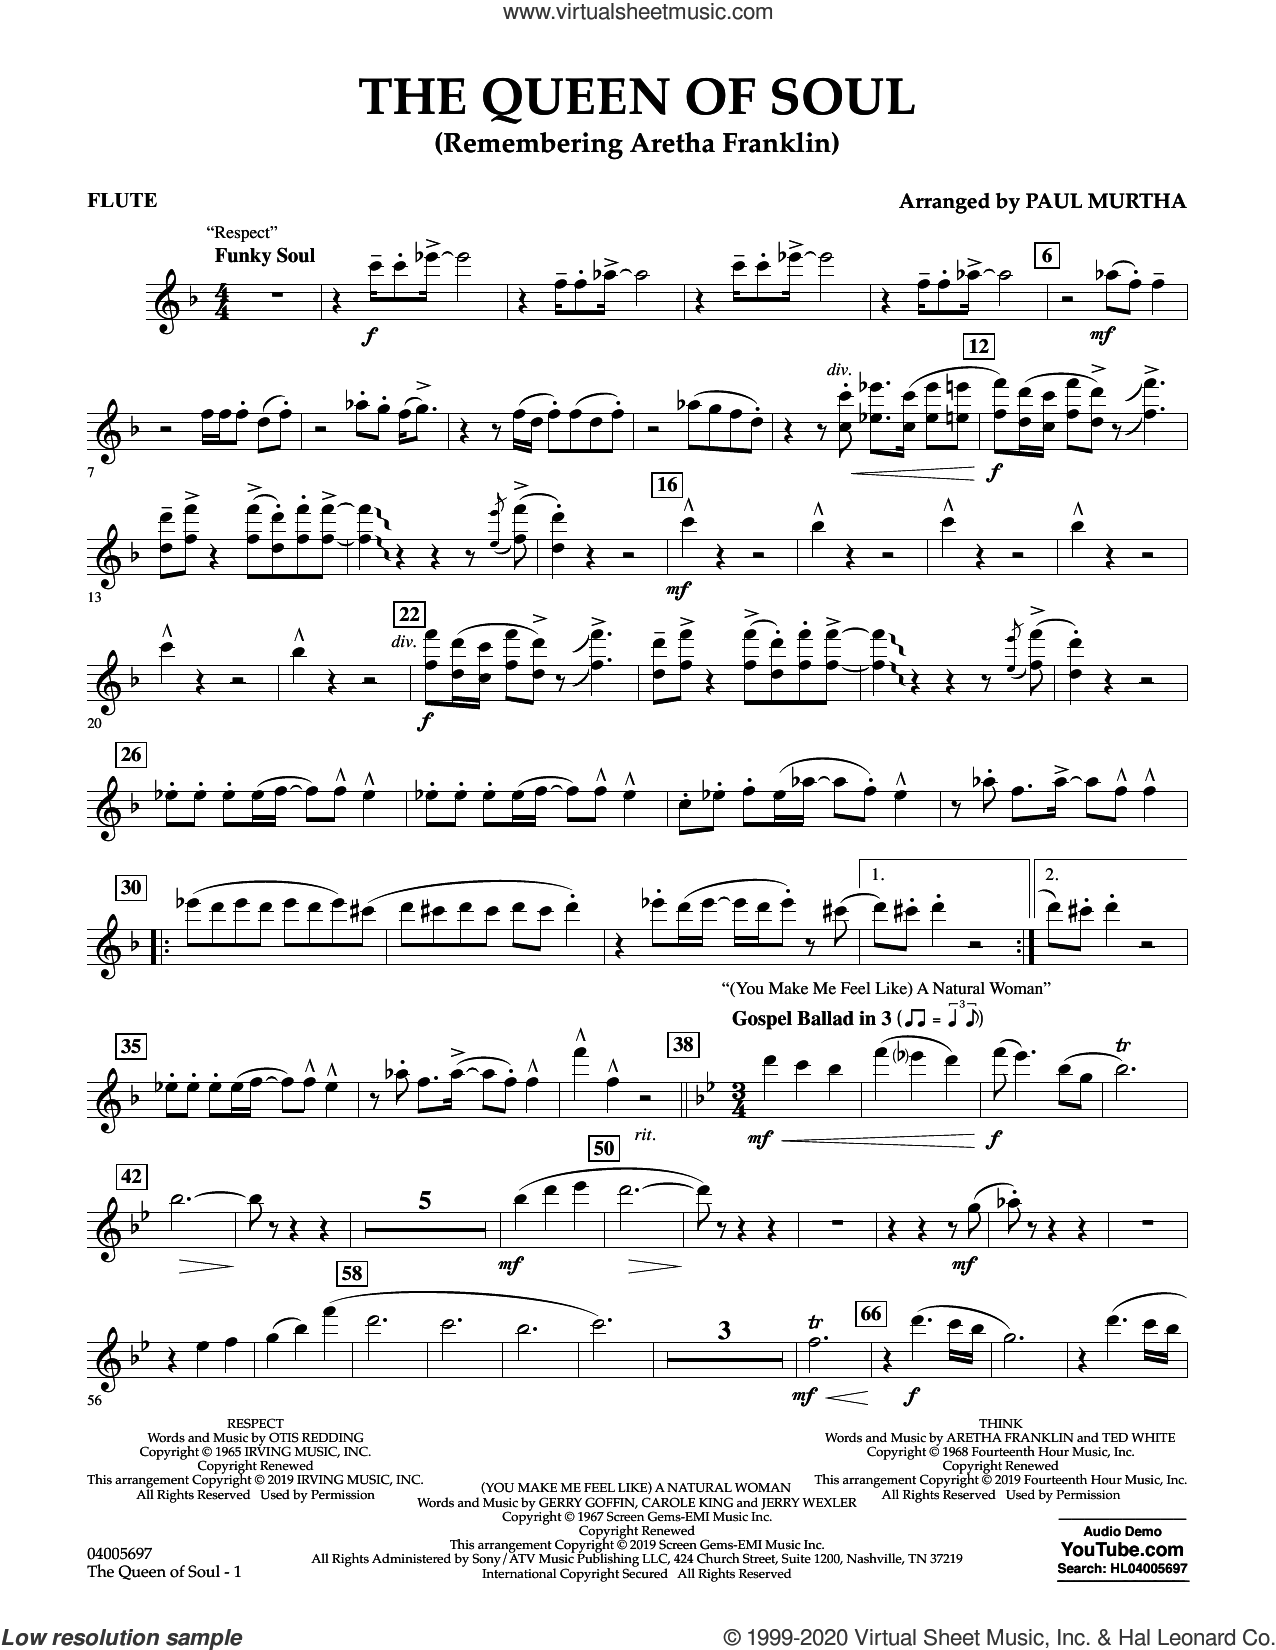 The Queen Of Soul (arr. Paul Murtha)- Conductor Score (Full Score) sheet music for concert band (flute) by Aretha Franklin and Paul Murtha, intermediate skill level